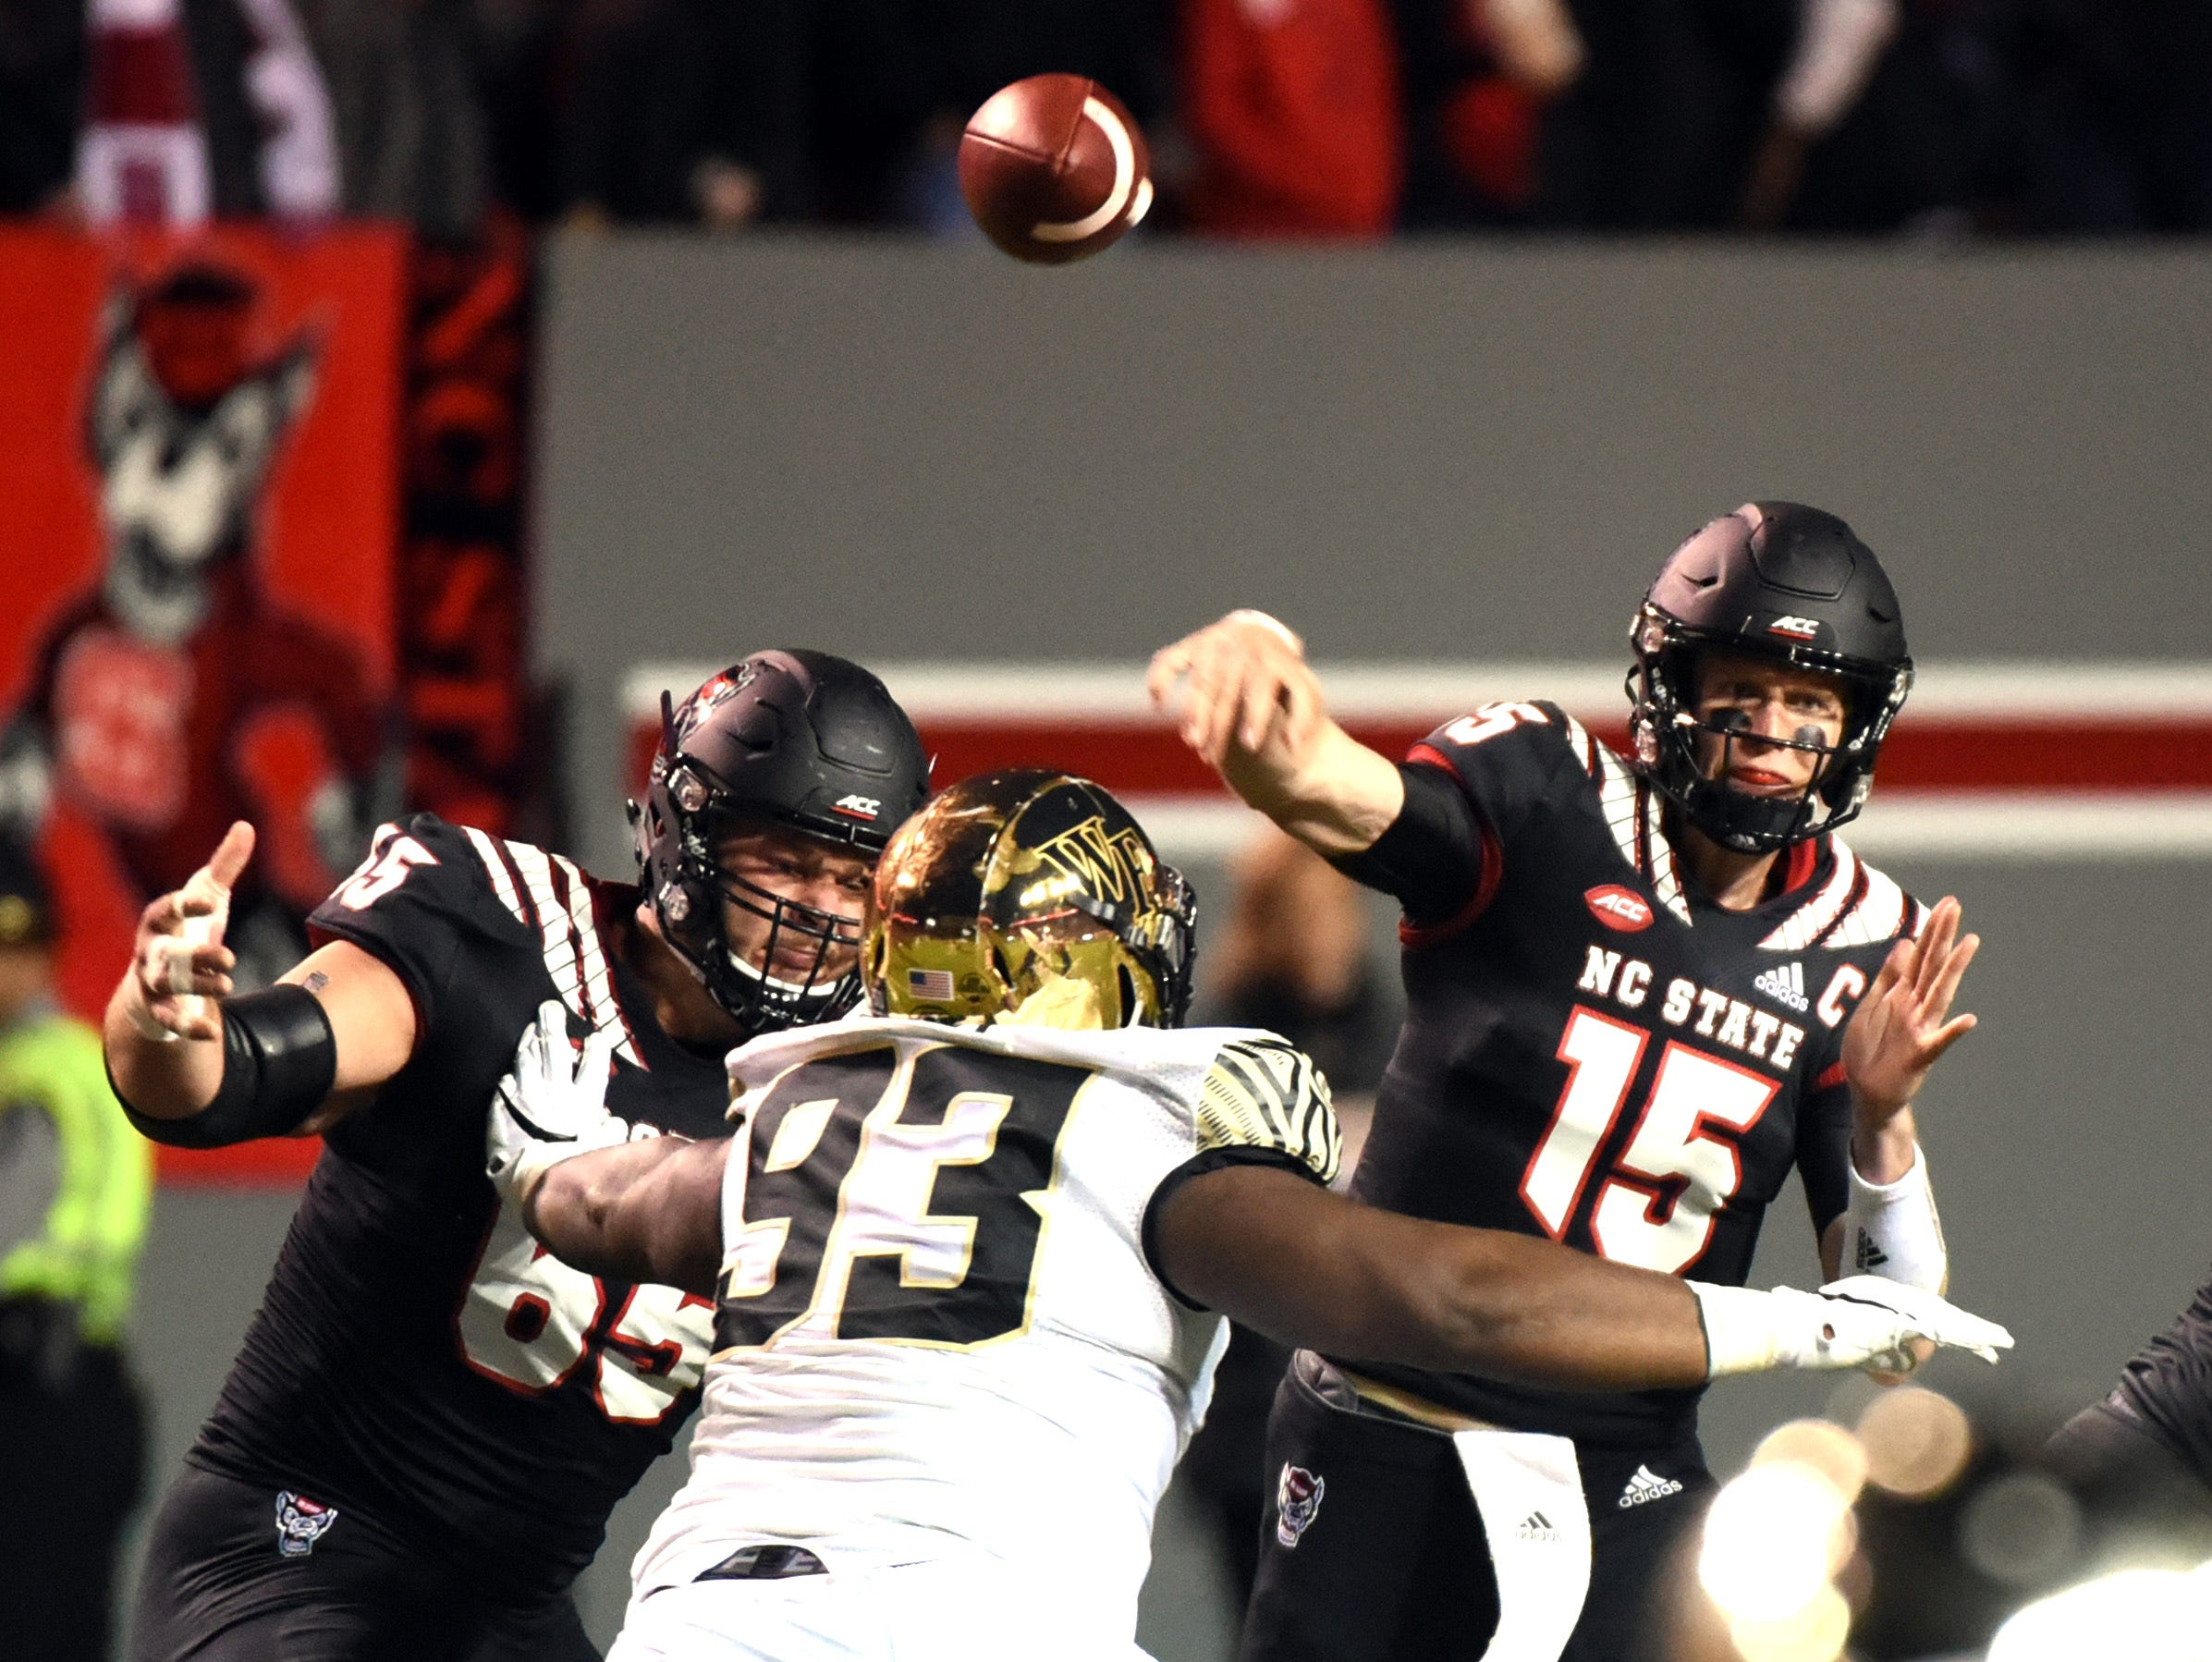 North Carolina State Wolfpack quarterback Ryan Findley (15) throws a pass during the first half against the Wake Forest Demon Deacons at Carter-Finley Stadium.